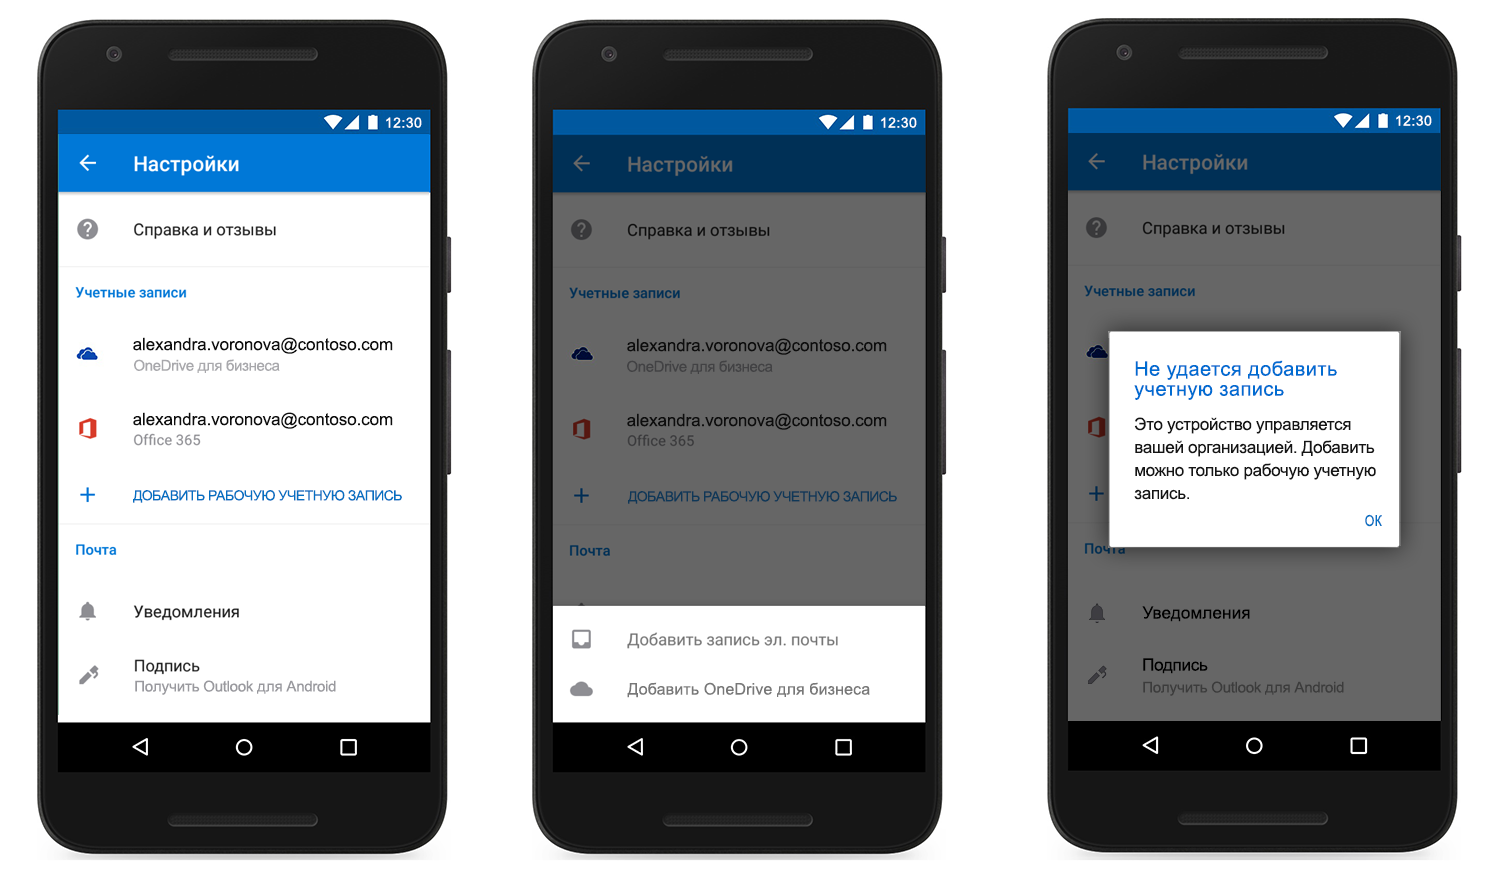 Изображение трех устройств, на которых учетная запись добавляется в Outlook Mobile.